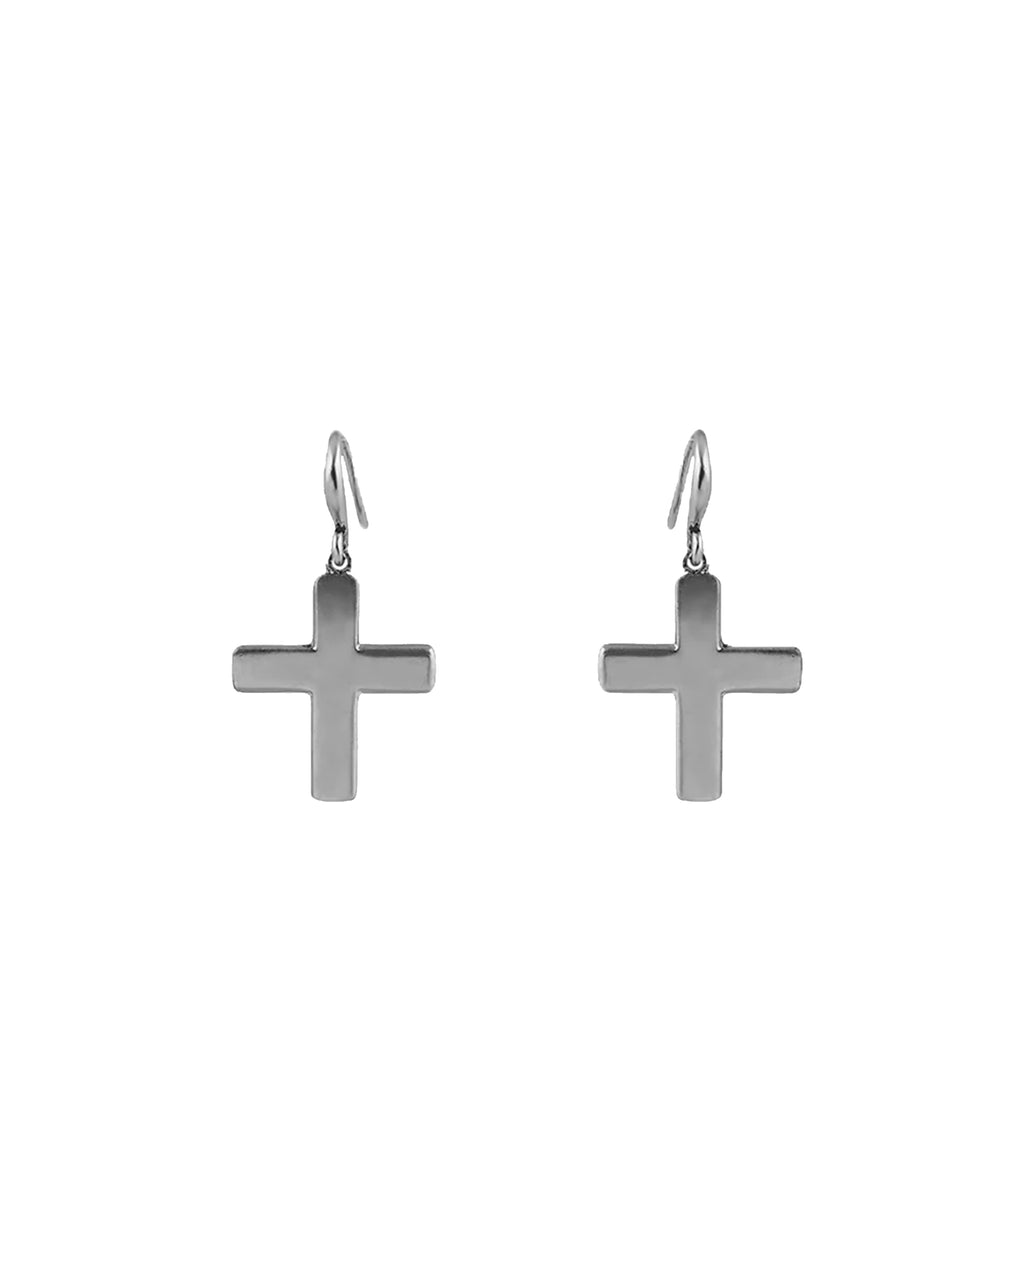 NM01433 - SMALL SOFT CROSS EARRINGS - accessories - jewelry - Gothic-style crosses are beautifully CRAFTED. These fashion jewelry earrings are secured with fishhook backs.